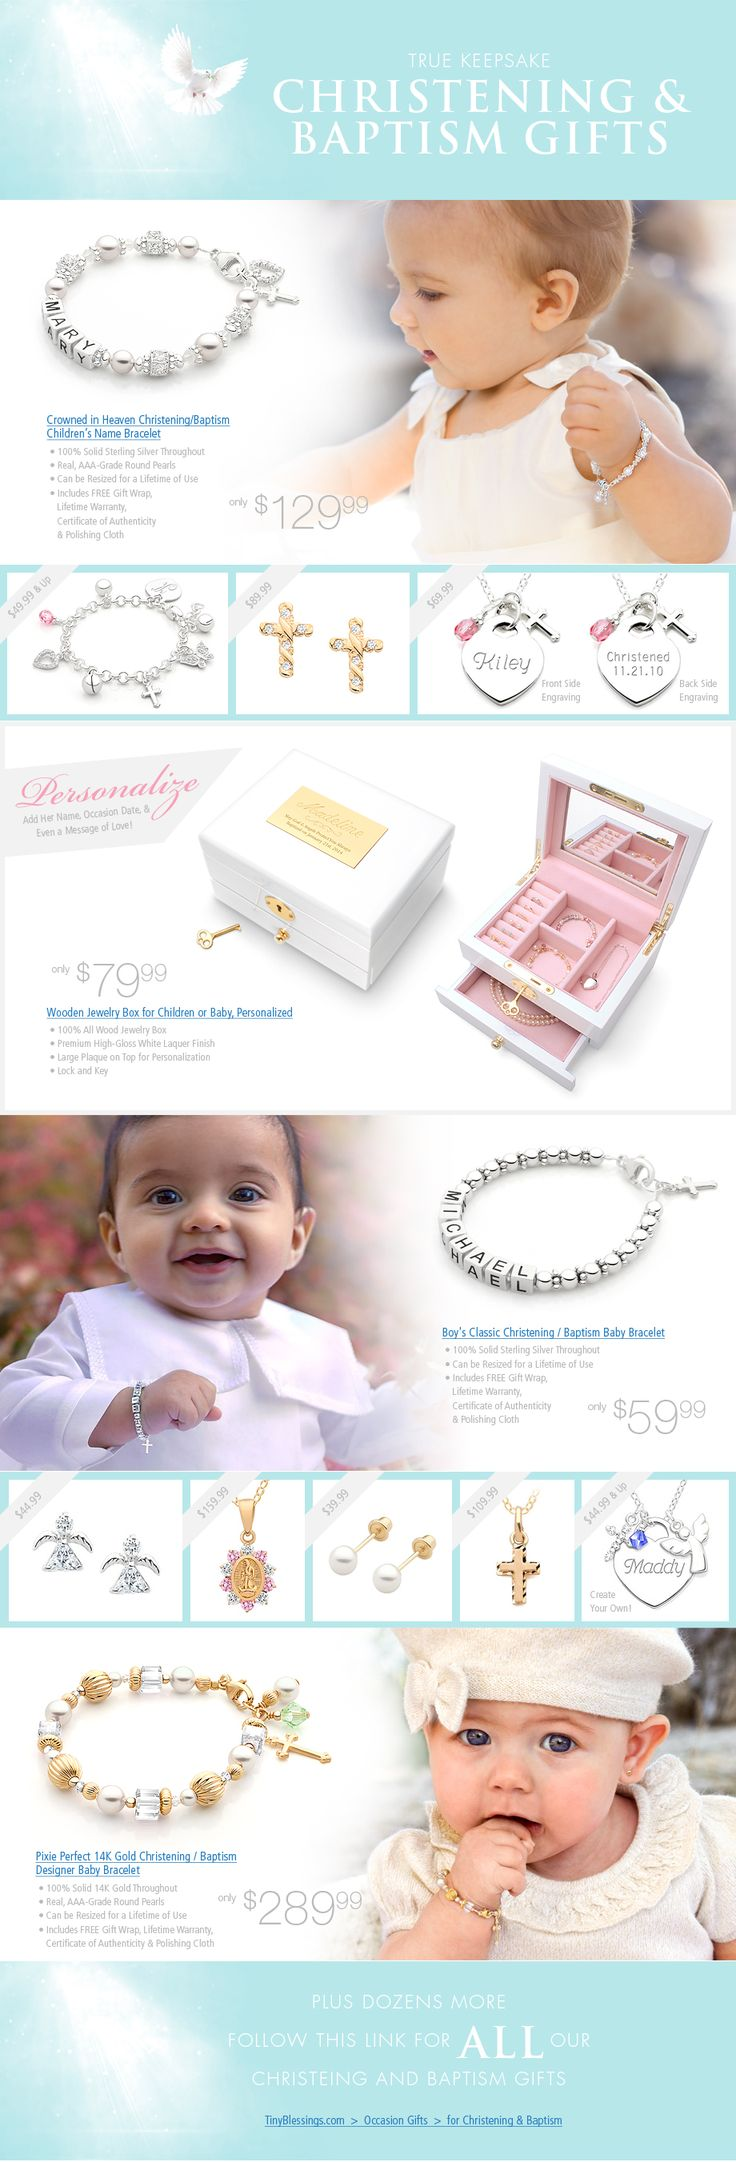 Gorgeous Baptism & Christening Gift Ideas!